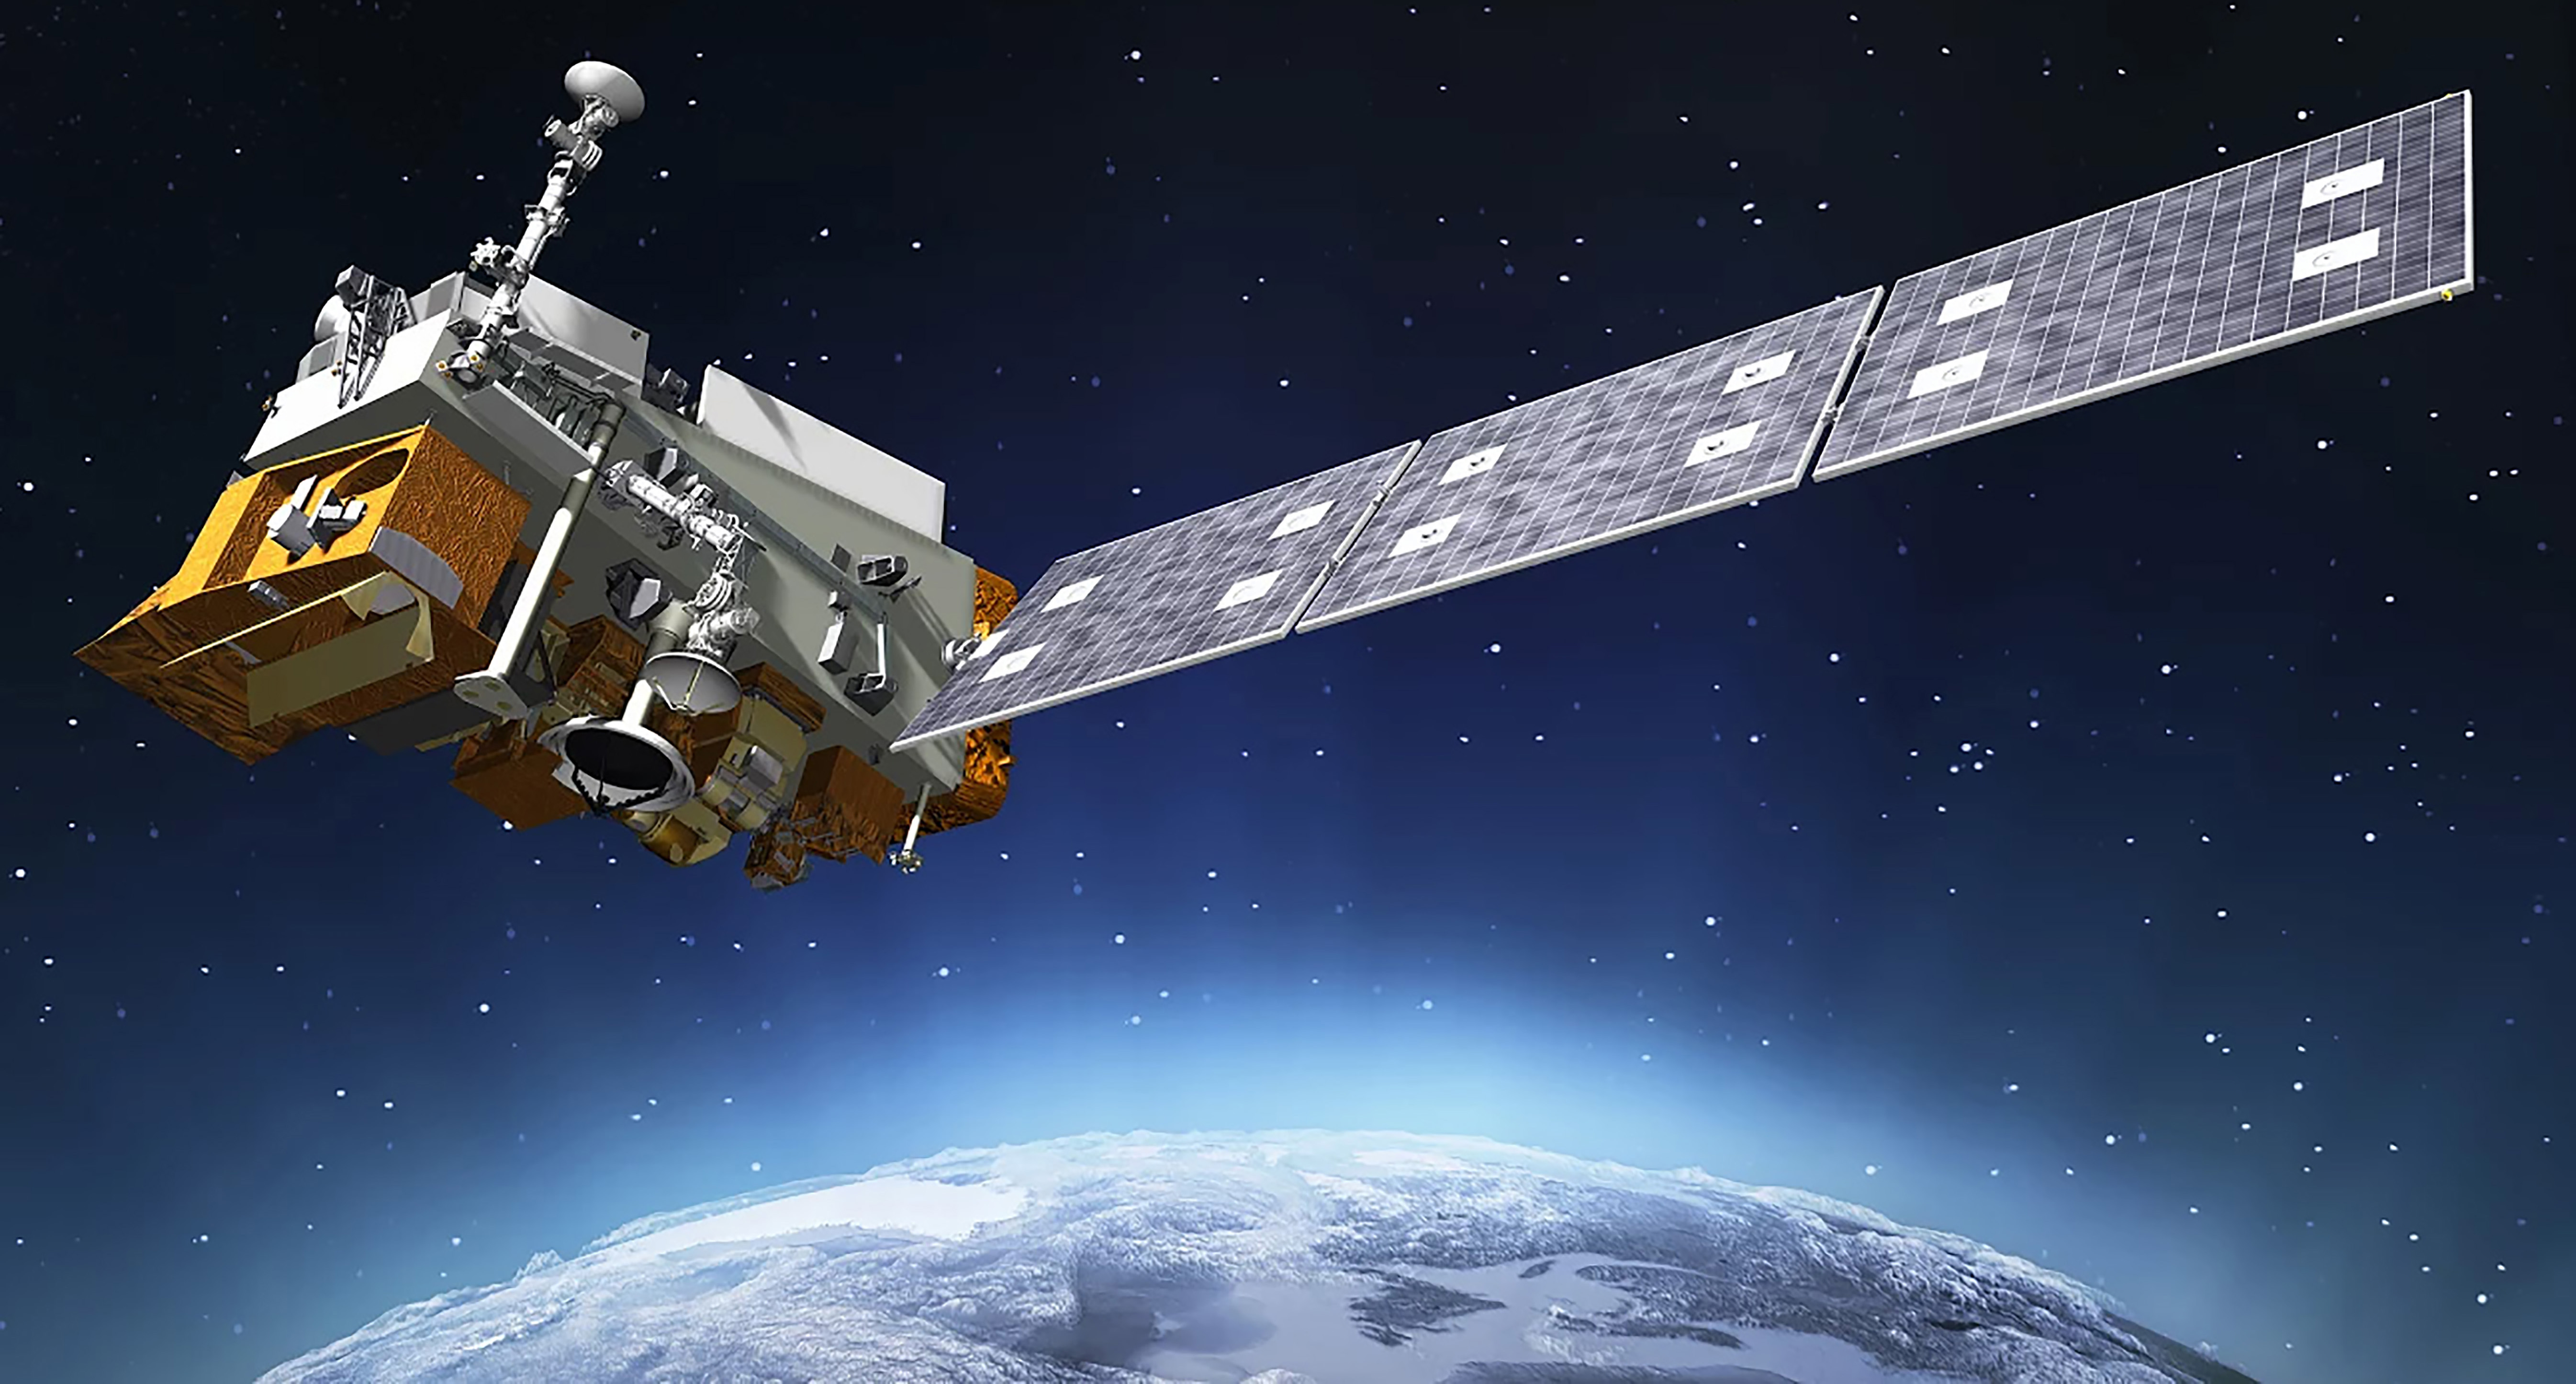 JPSS To Provide More Accurate Environmental Forecasts NASA - Satellite image